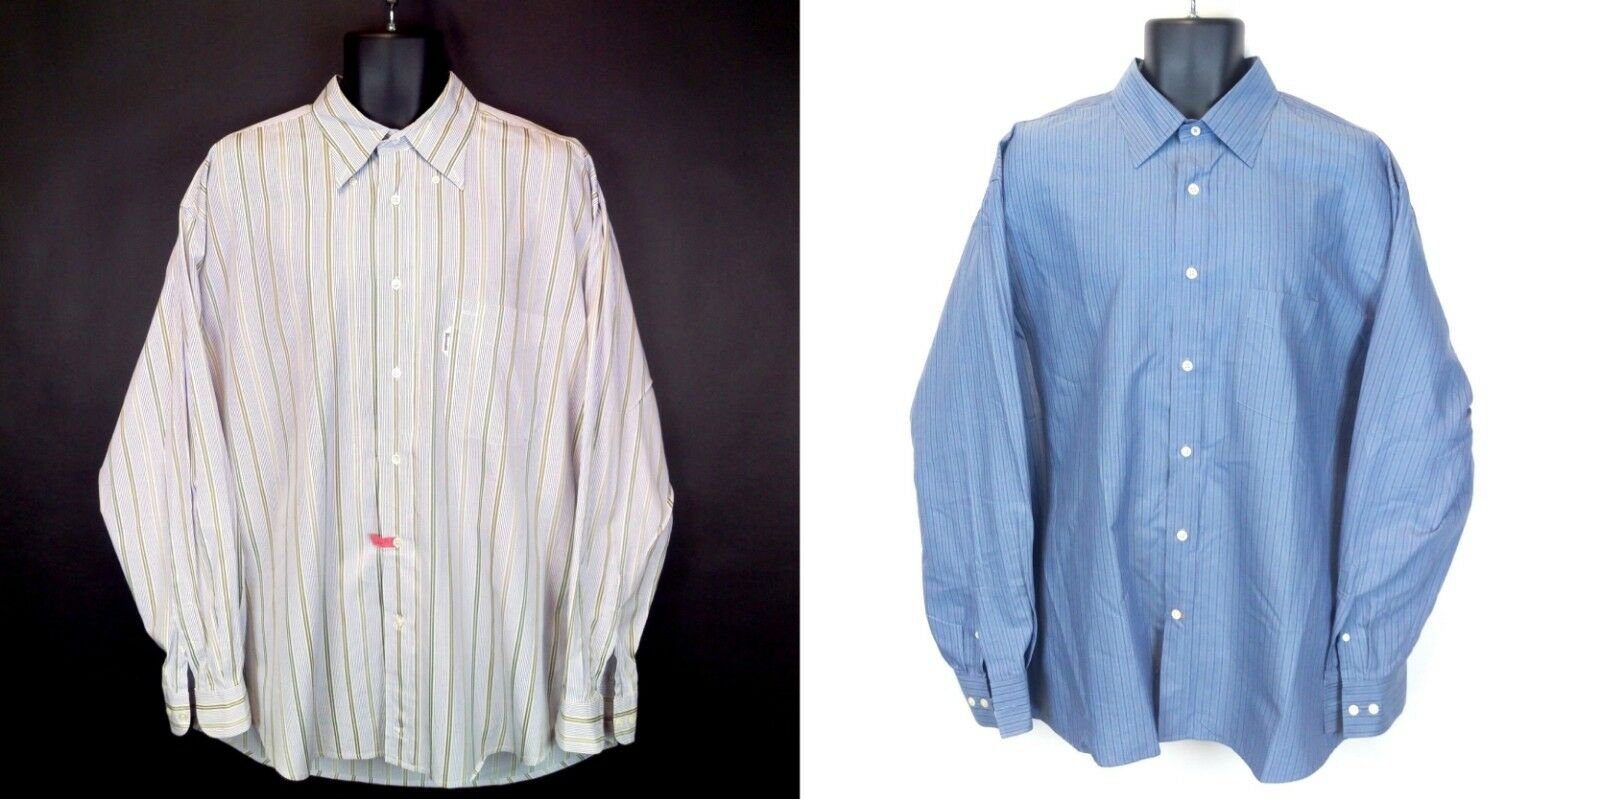 Lot of 2 Faconnable Men's XL bluee Striped Long-Sleeve Cotton Button Shirts EUC